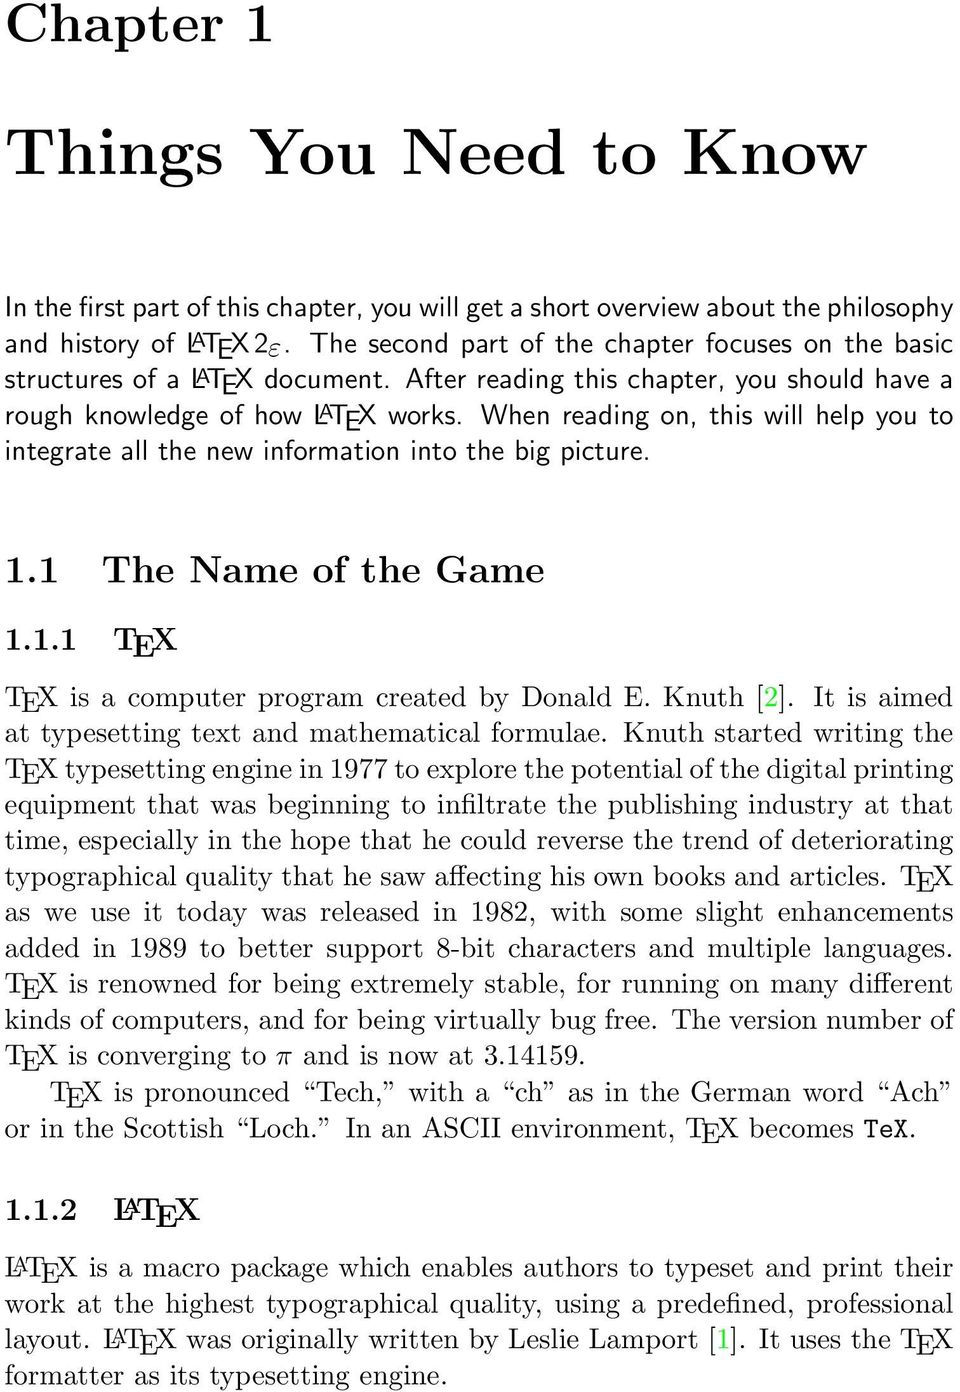 When reading on, this will help you to integrate all the new information into the big picture. 1.1 The Name of the Game 1.1.1 TEX TEX is a computer program created by Donald E. Knuth [2].